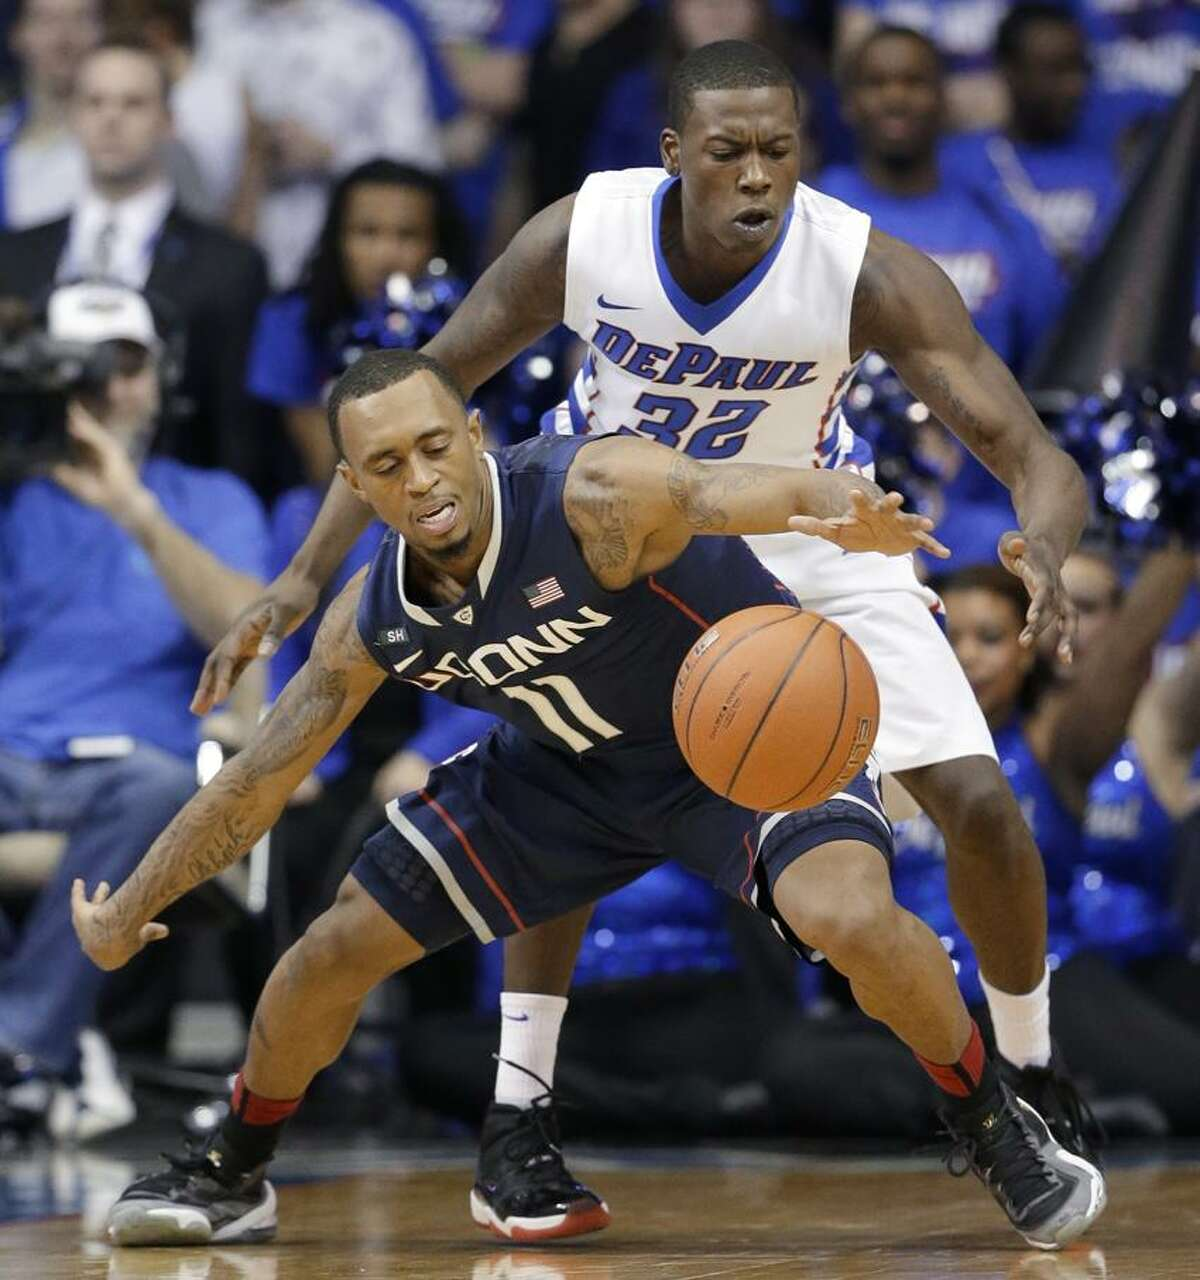 Connecticut guard Ryan Boatright (11) controls the ball against DePaul guard Charles McKinney (32) during the second half of an NCAA college basketball game in Rosemont, Ill., on Saturday, Feb. 23, 2013. Connecticut won 81-69. (AP Photo/Nam Y. Huh)